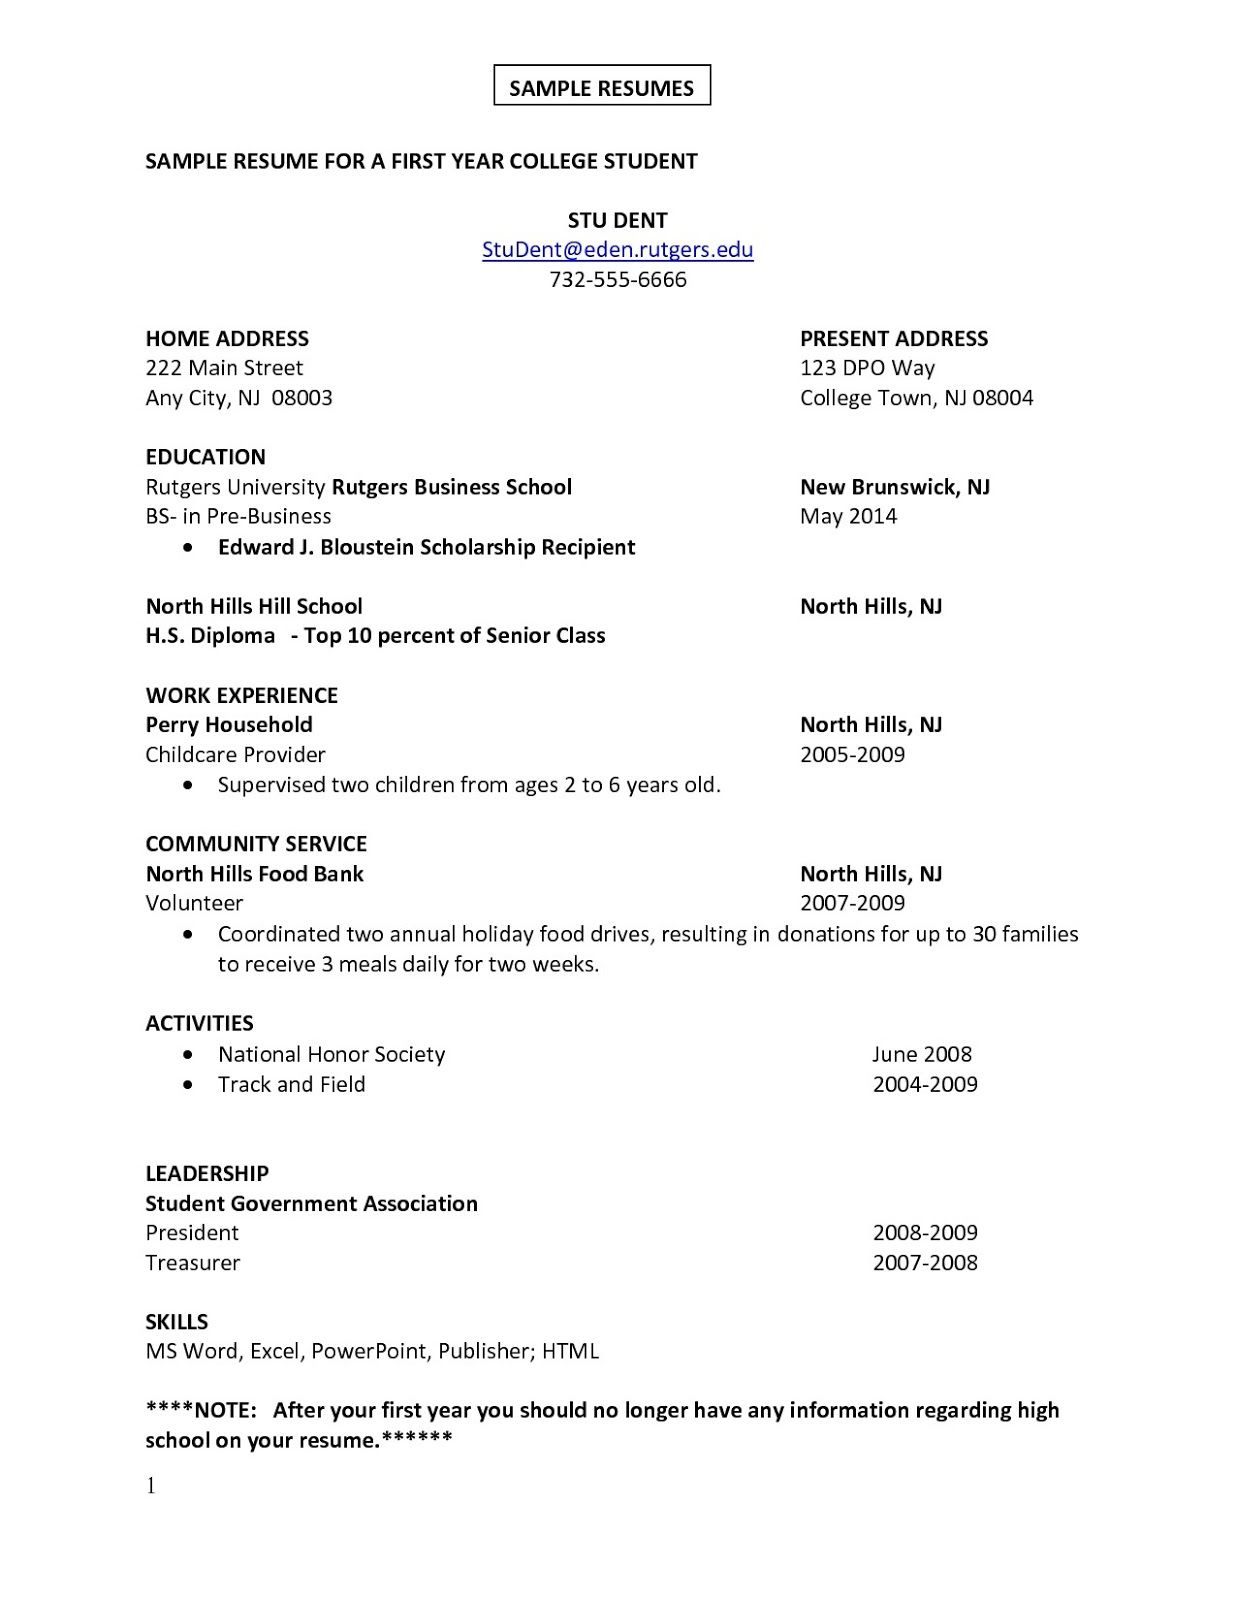 First Job Sample Resume | Sample Resumes  Job Resume Examples